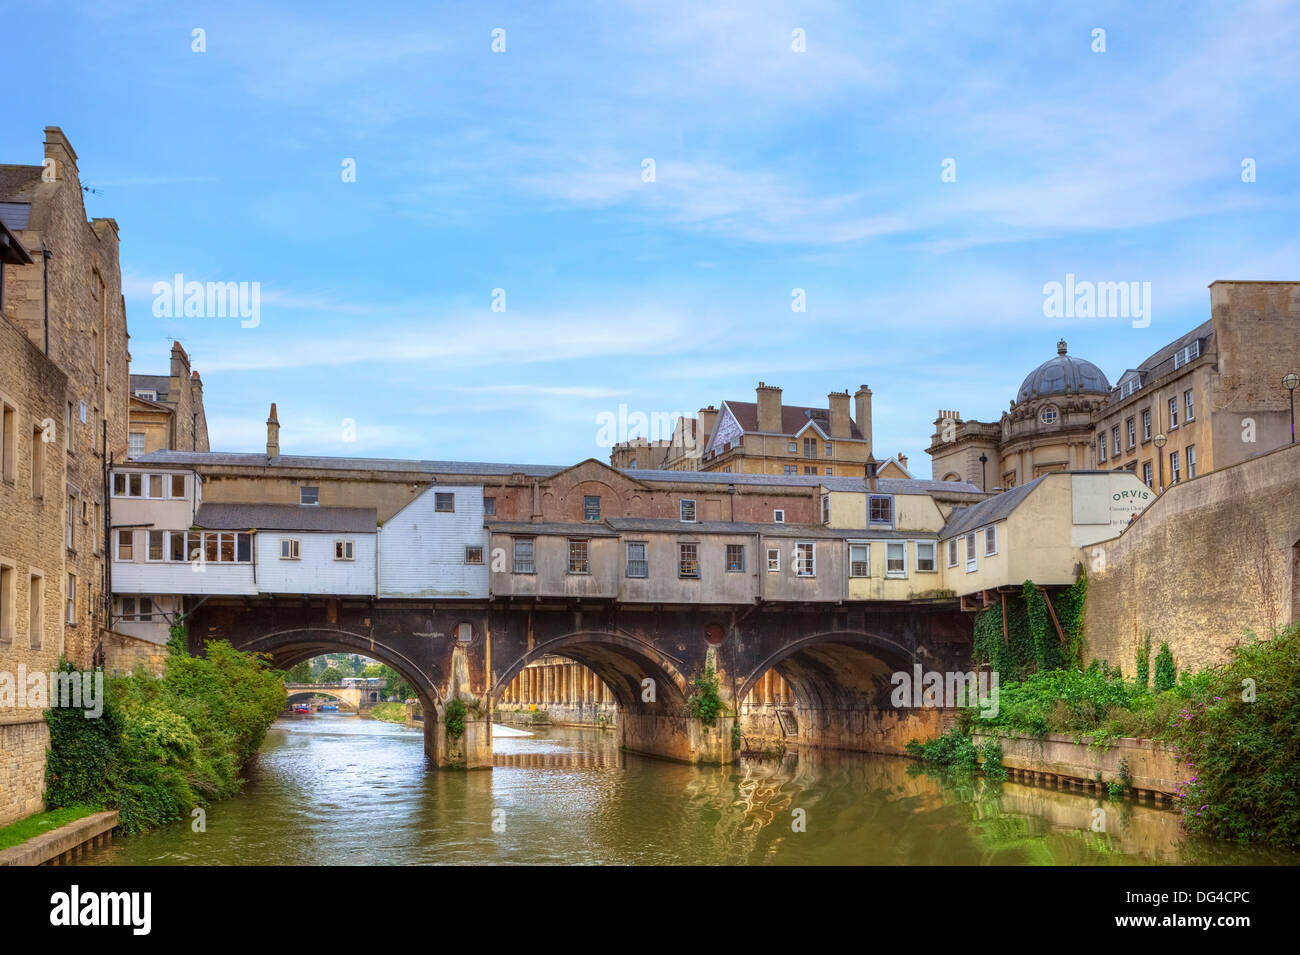 Pulteney Bridge, Bath, Somerset, England, United Kingdom - Stock Image